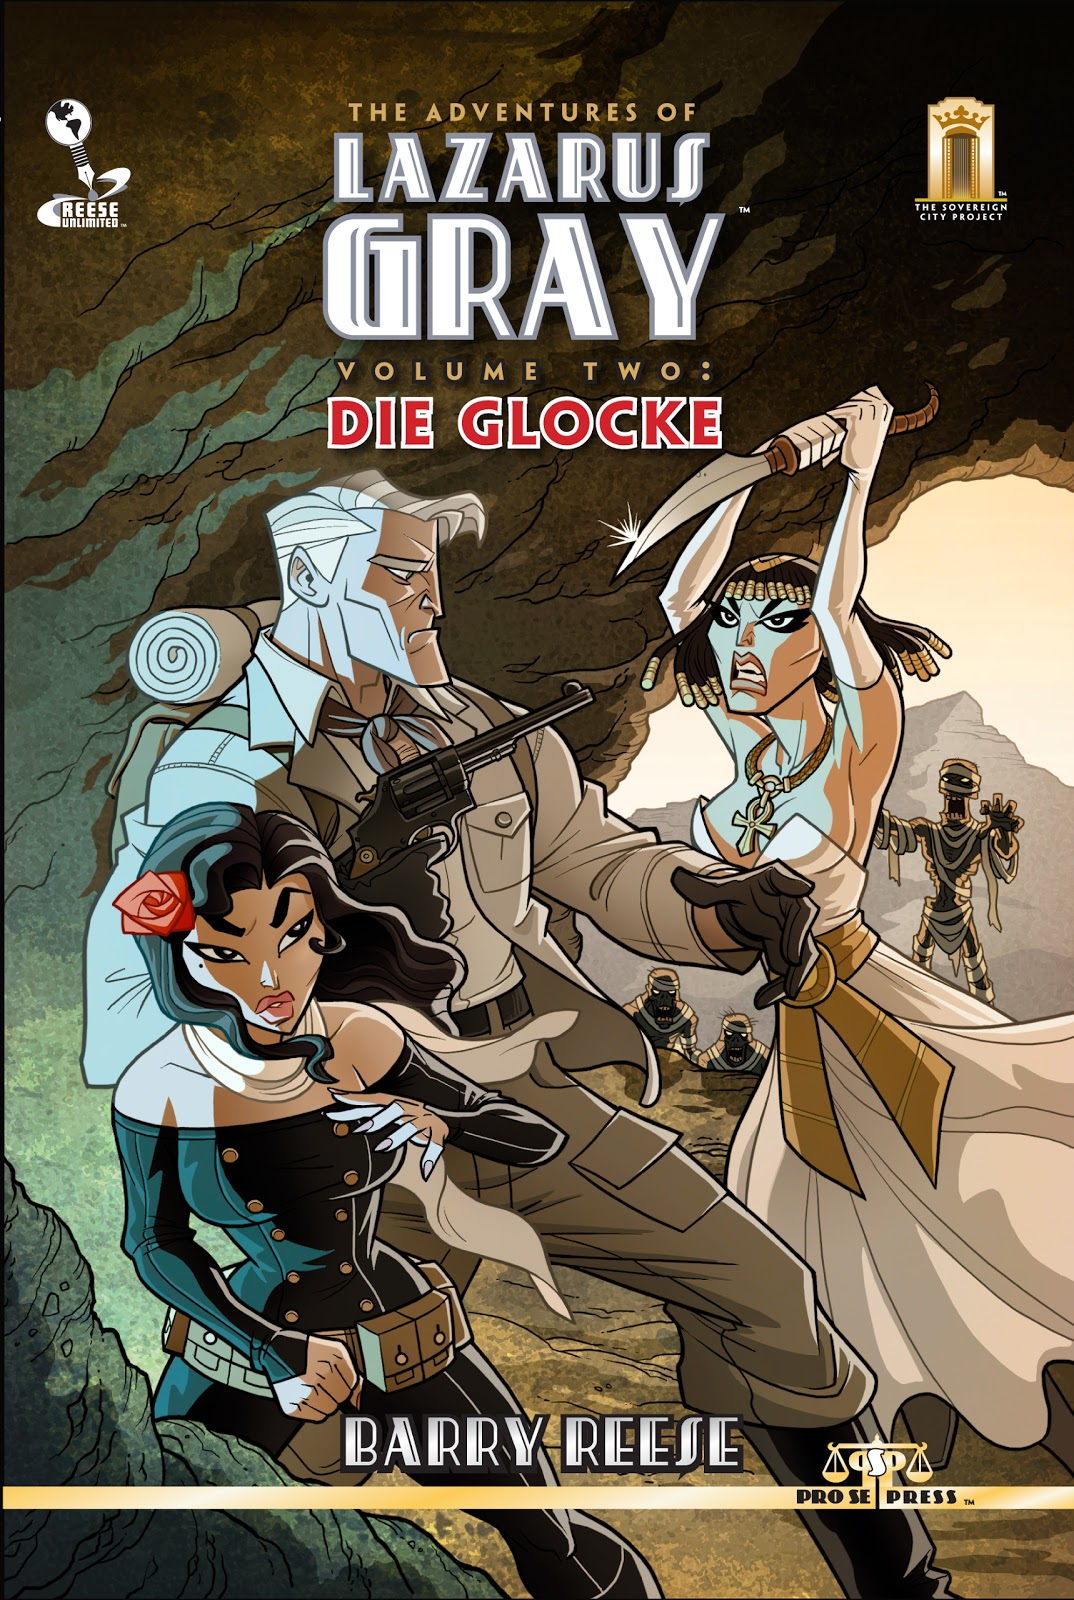 PRO SE AND REESE UNLIMITED DEBUT LAZARUS GRAY VOLUME TWO